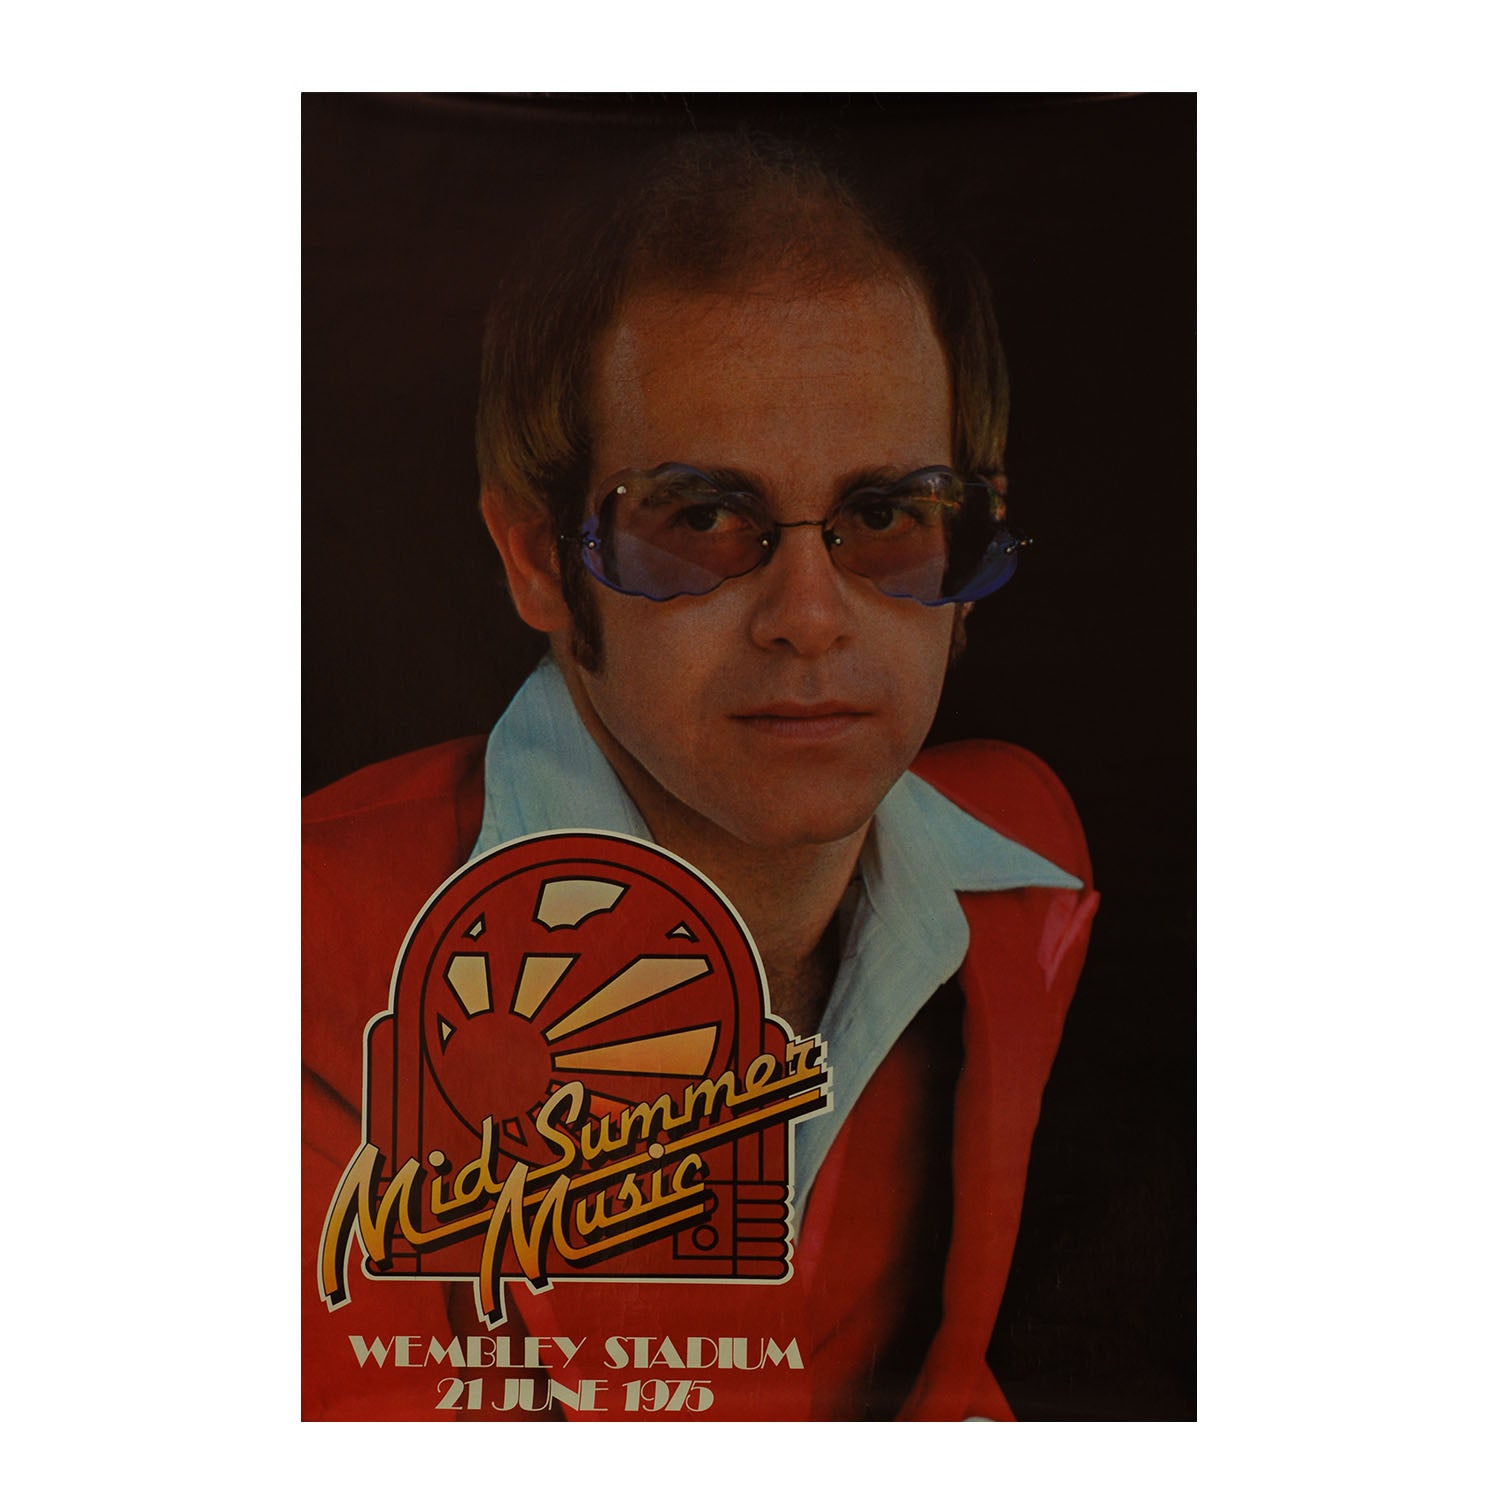 Original poster: Midsummer Music Wembley Stadium. Elton John